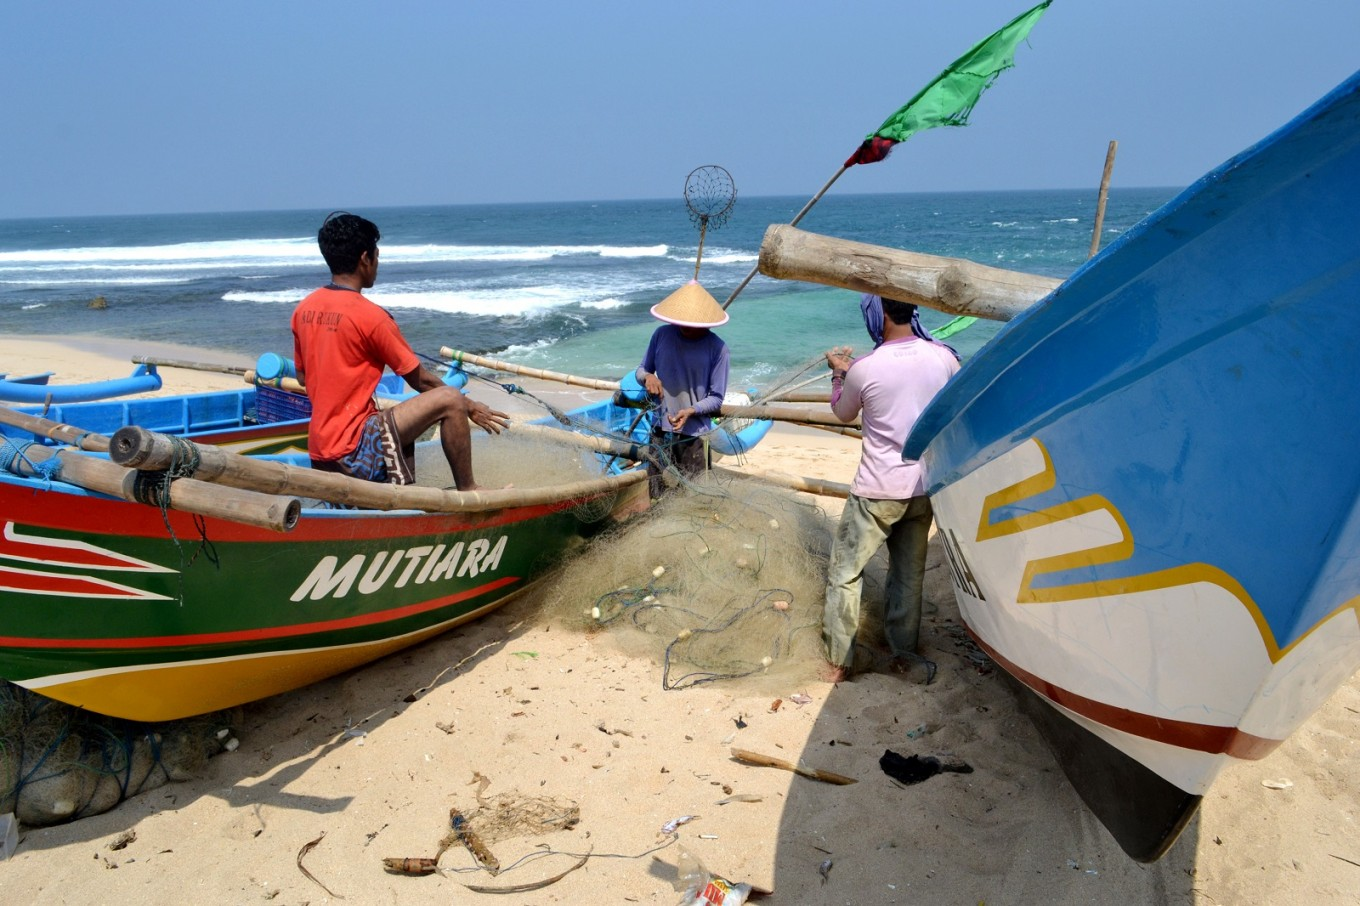 Fishing is commonly seen along the southern coastal road, particularly in the areas of Baron, Tepus and Girisubo.